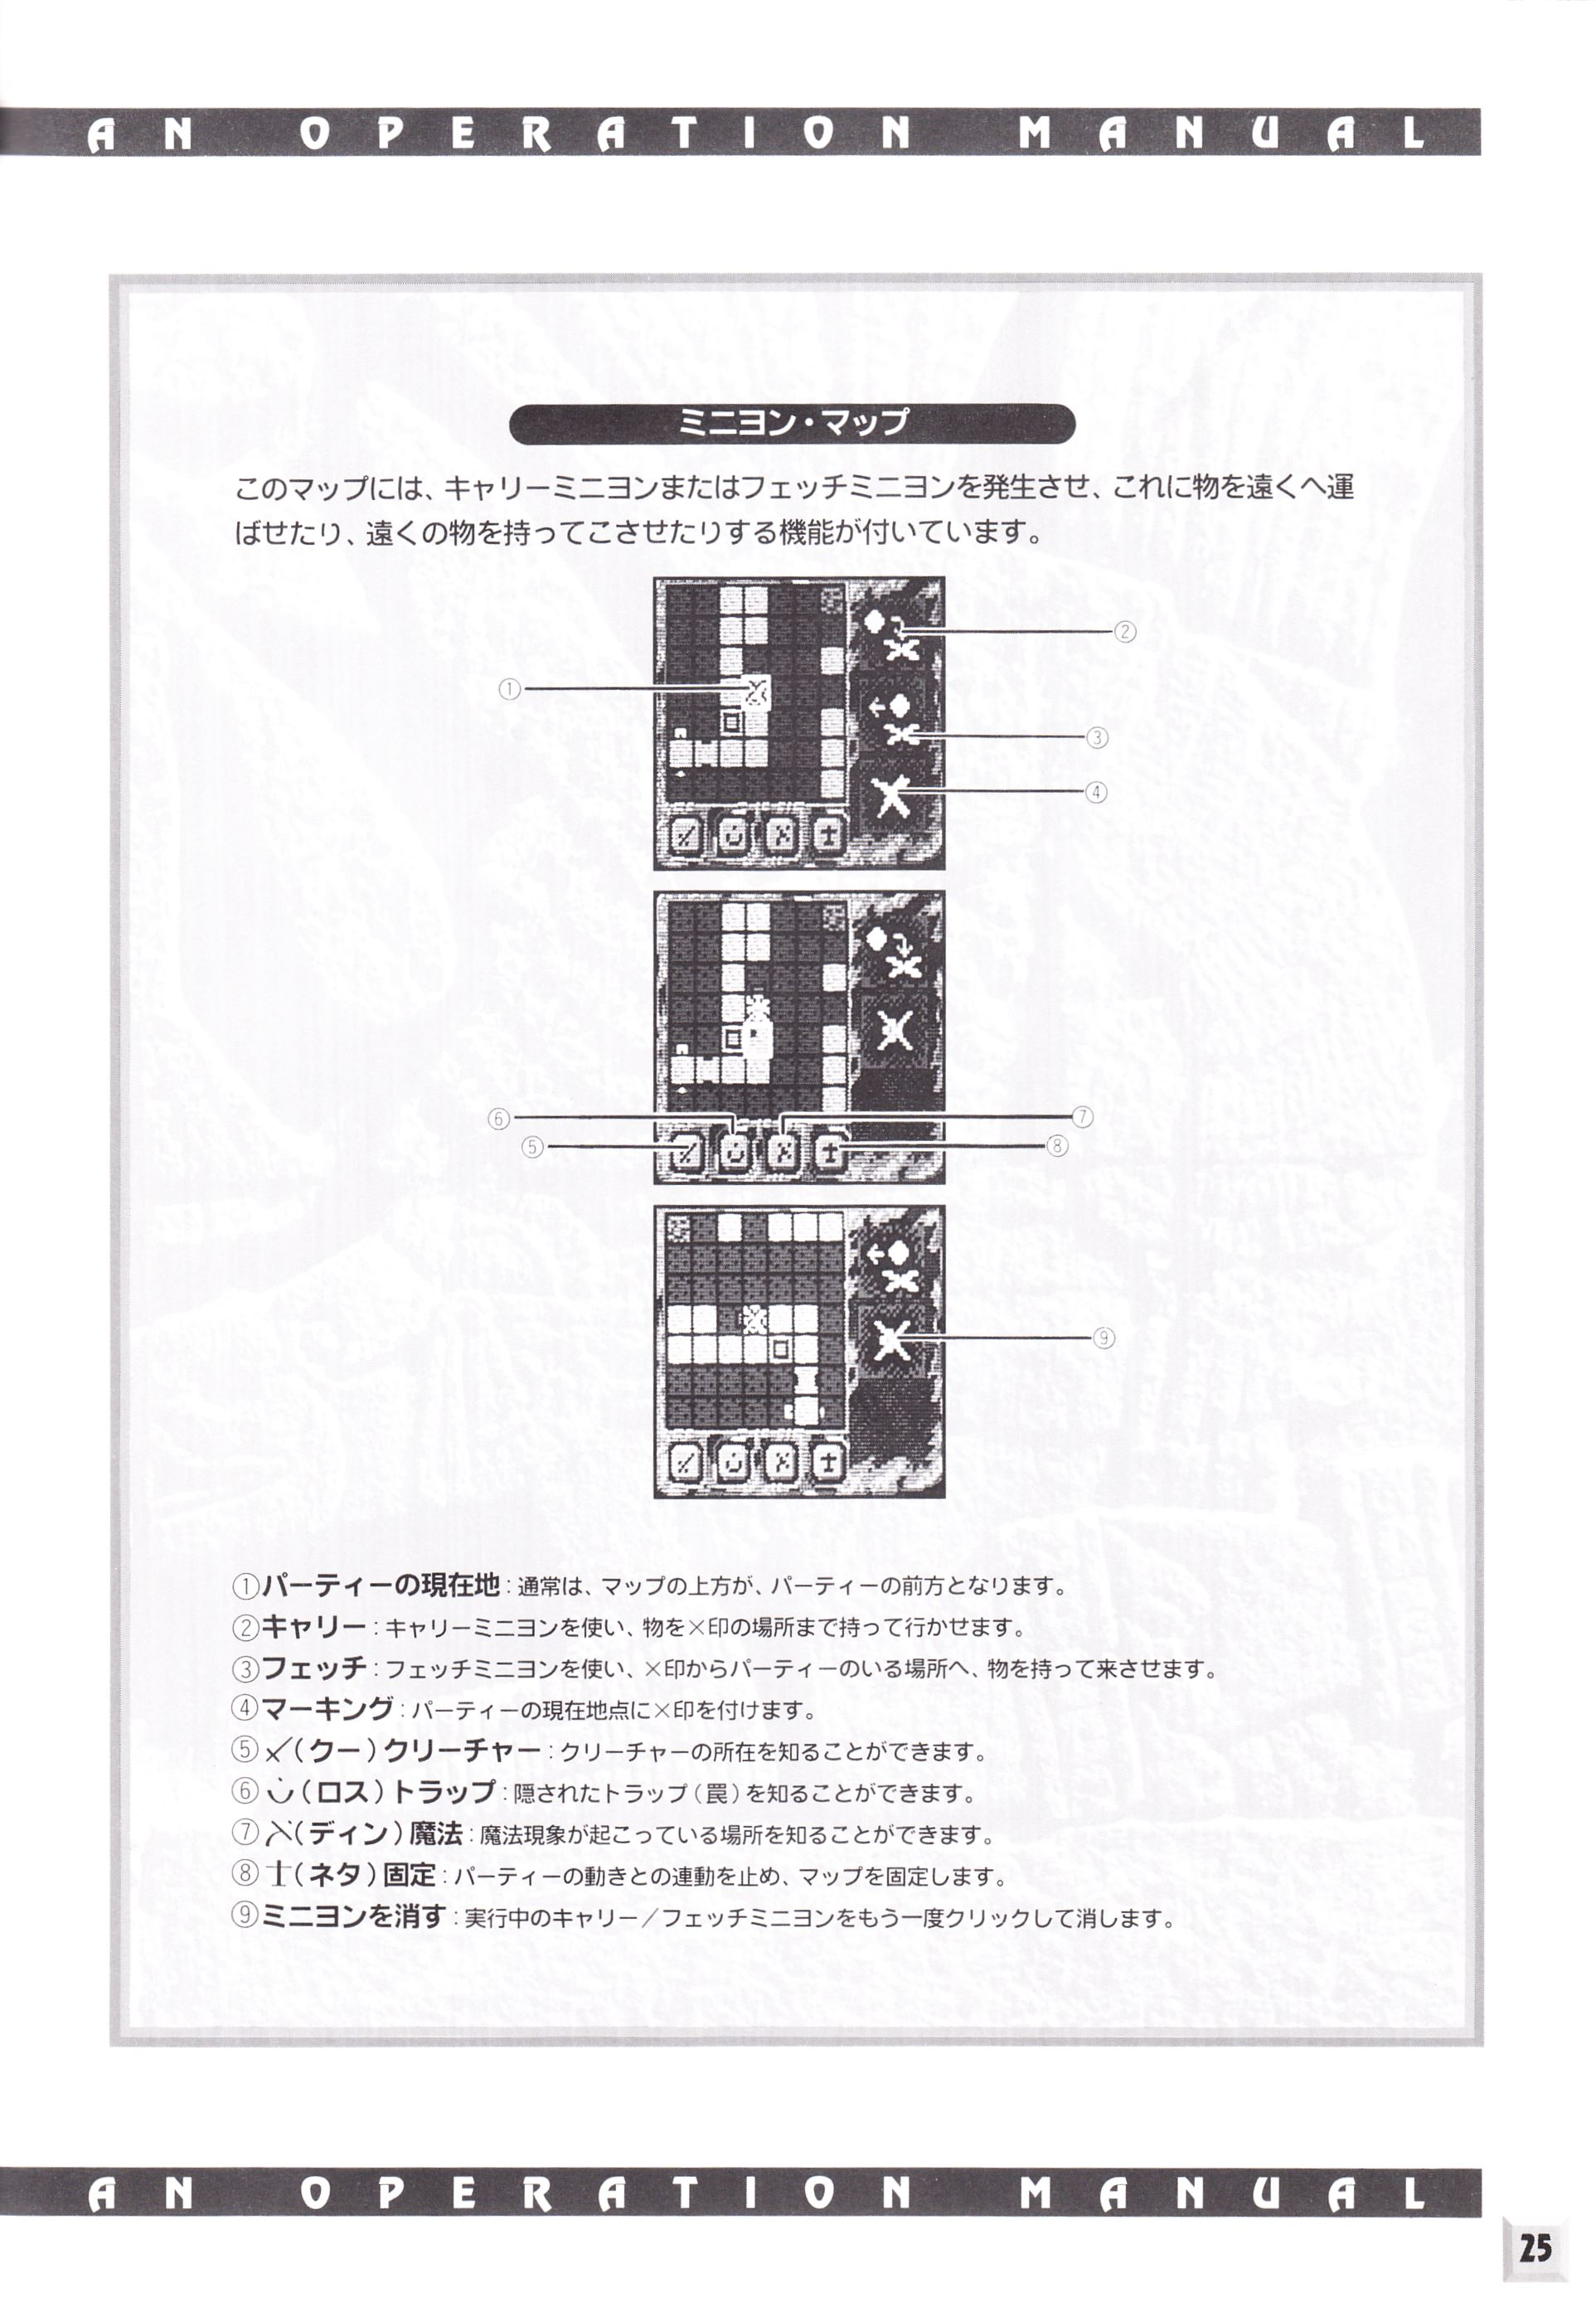 Game - Dungeon Master II - JP - FM Towns - An Operation Manual - Page 027 - Scan